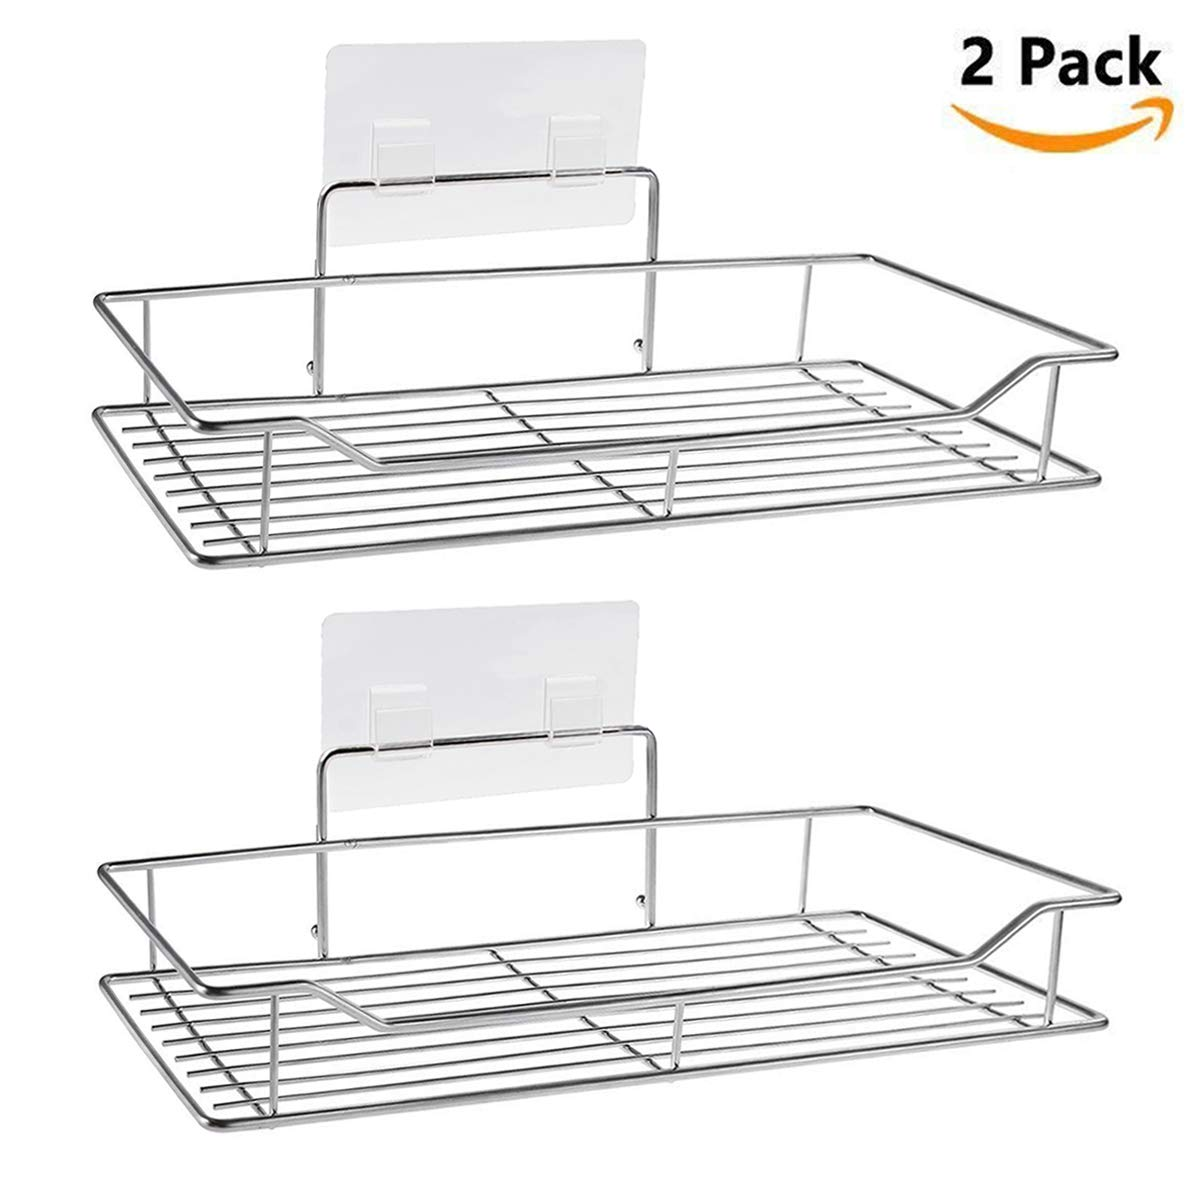 Bathroom Shelves, WYJP Shower Caddy Kitchen Rack Storage Organizer with Traceless Transparent Adhesive No Drilling SUS304 Stainless Steel- 2 PACK